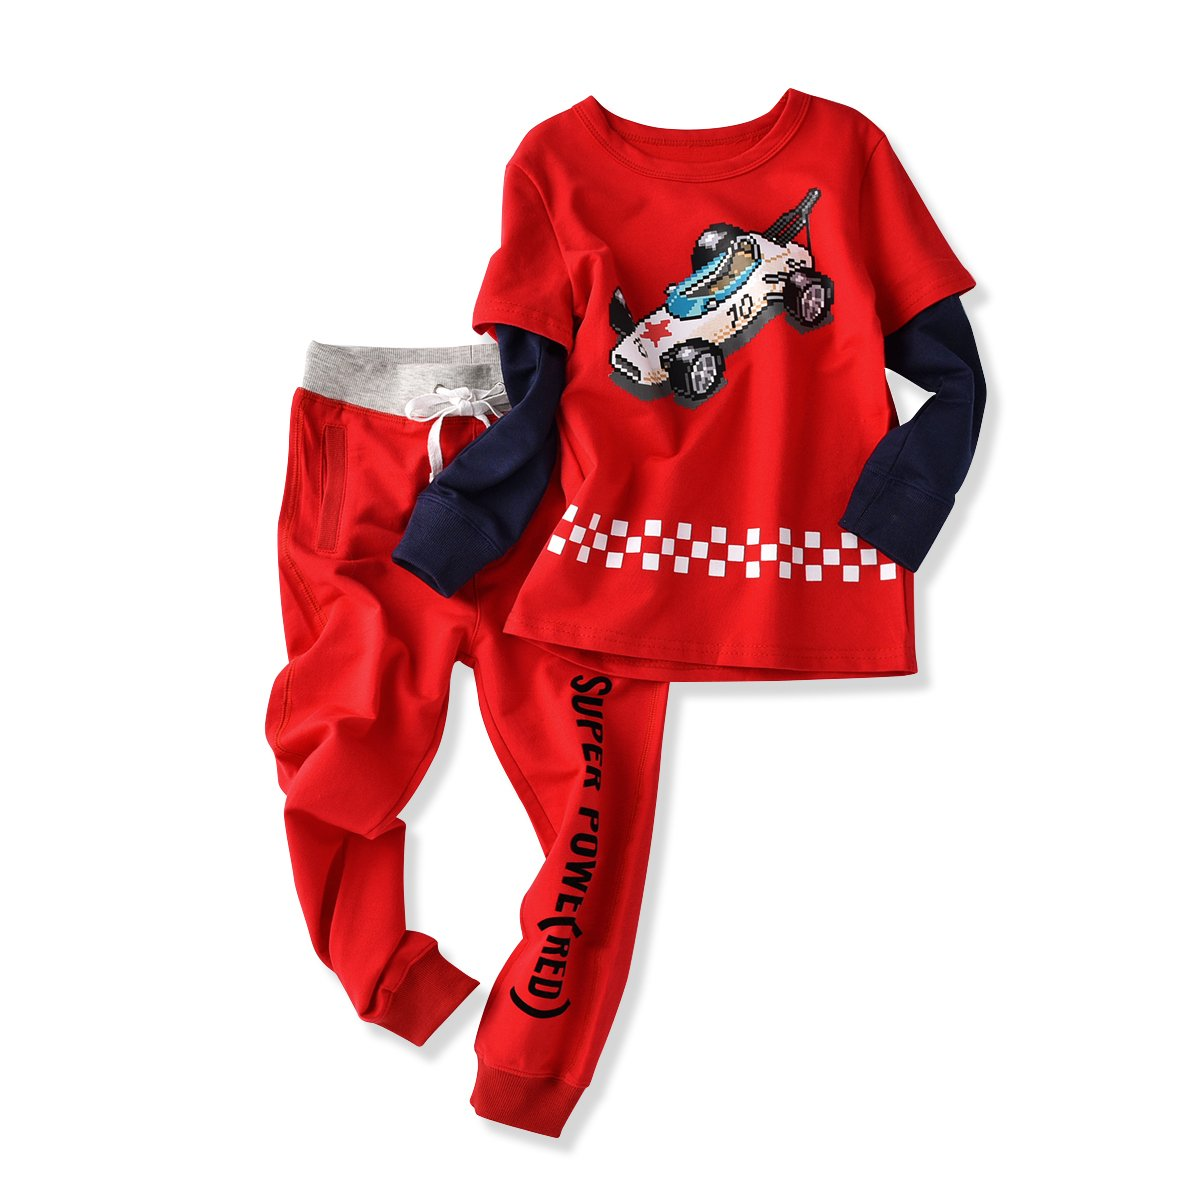 Little Boys Outfits, 2pcs Clothing Sets Casual Racing T-shirt and Pants (2T)